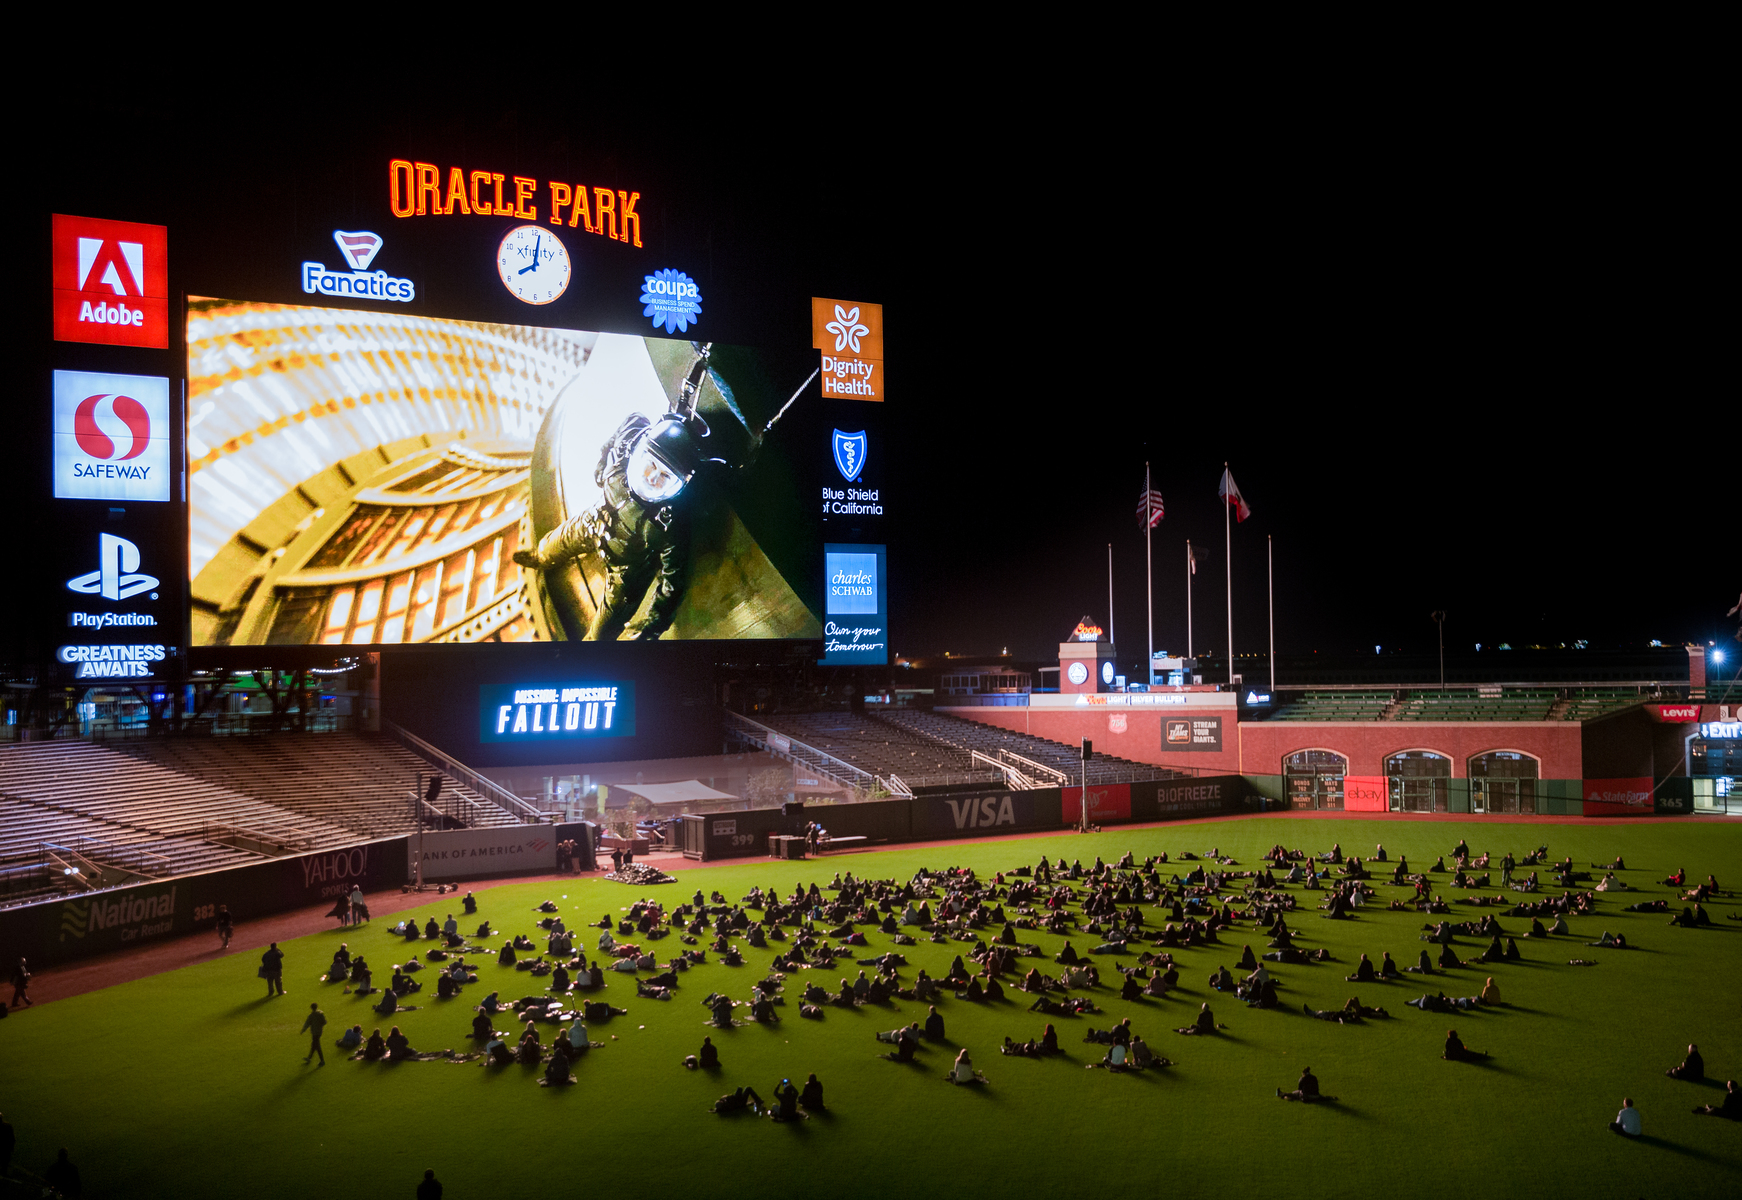 San Francisco Giants Oracle Park Movie Night.  Oracle Park is the home to the San Francisco Giants but they also host amazing events, but public and private events.  This photo is from their ongoing movie nights open to the public.  They played Mission Impossible with Tom Cruise on their giant 20 million dollar LED display.  Largest of any Ball Park in the US.